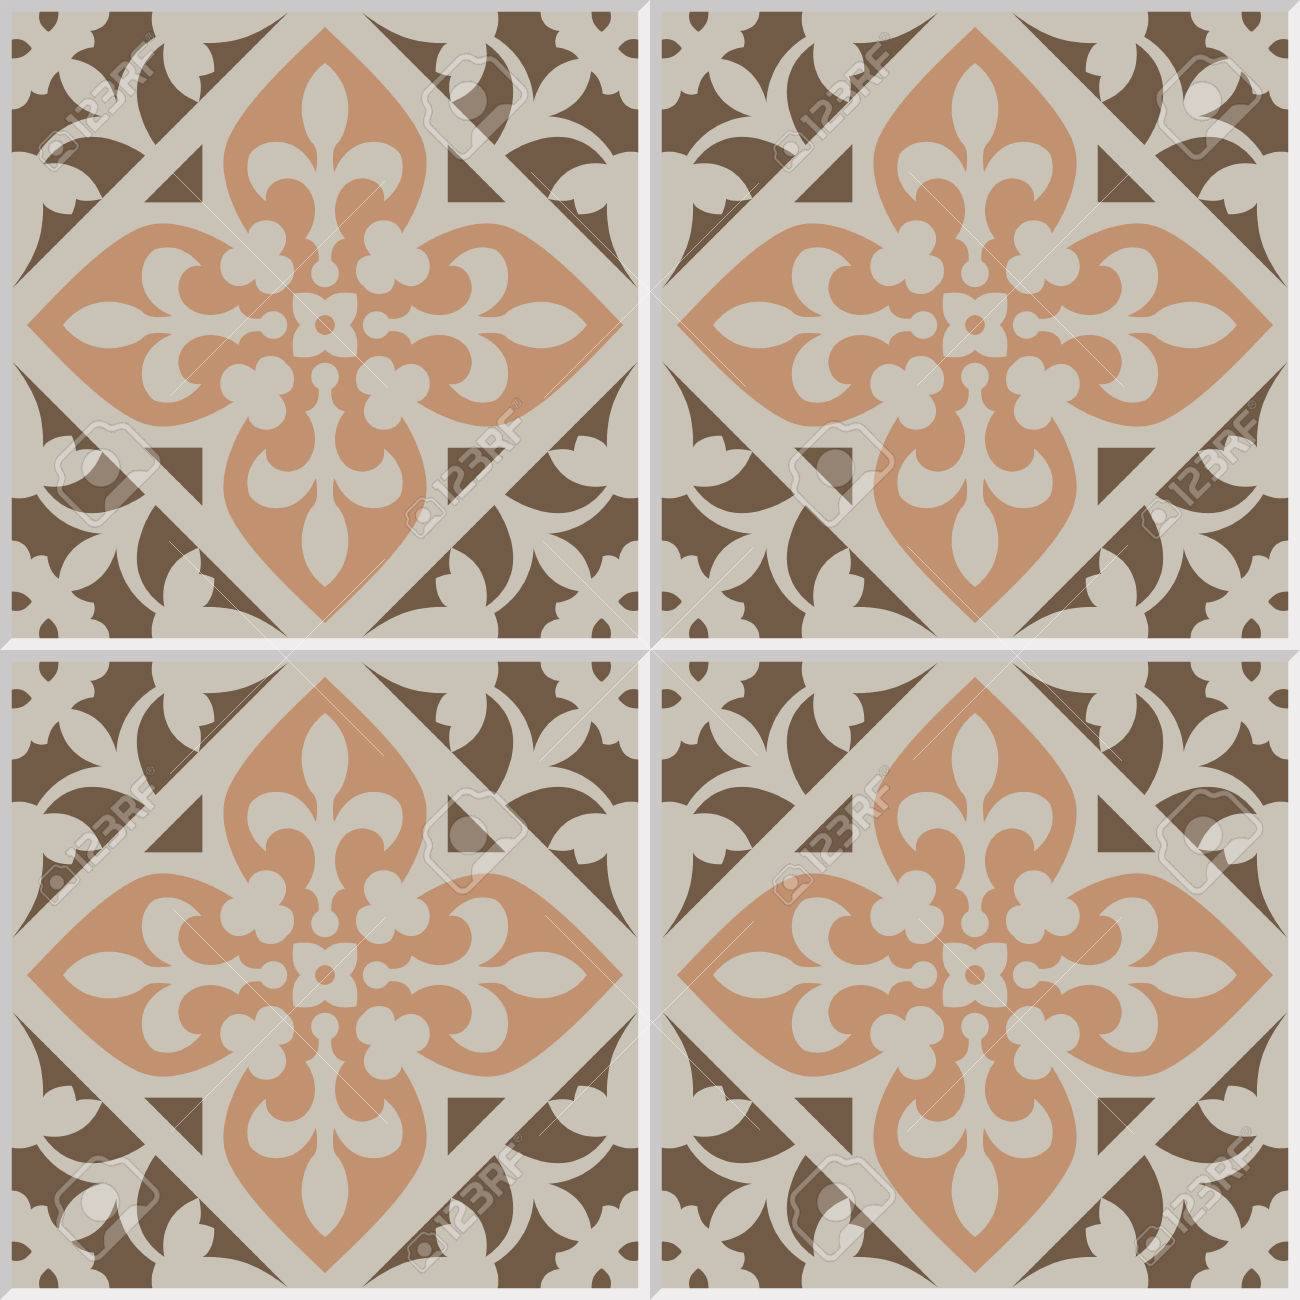 Vintage Ceramic Mosaic Floor Tile Seamless Pattern, Traditional ...